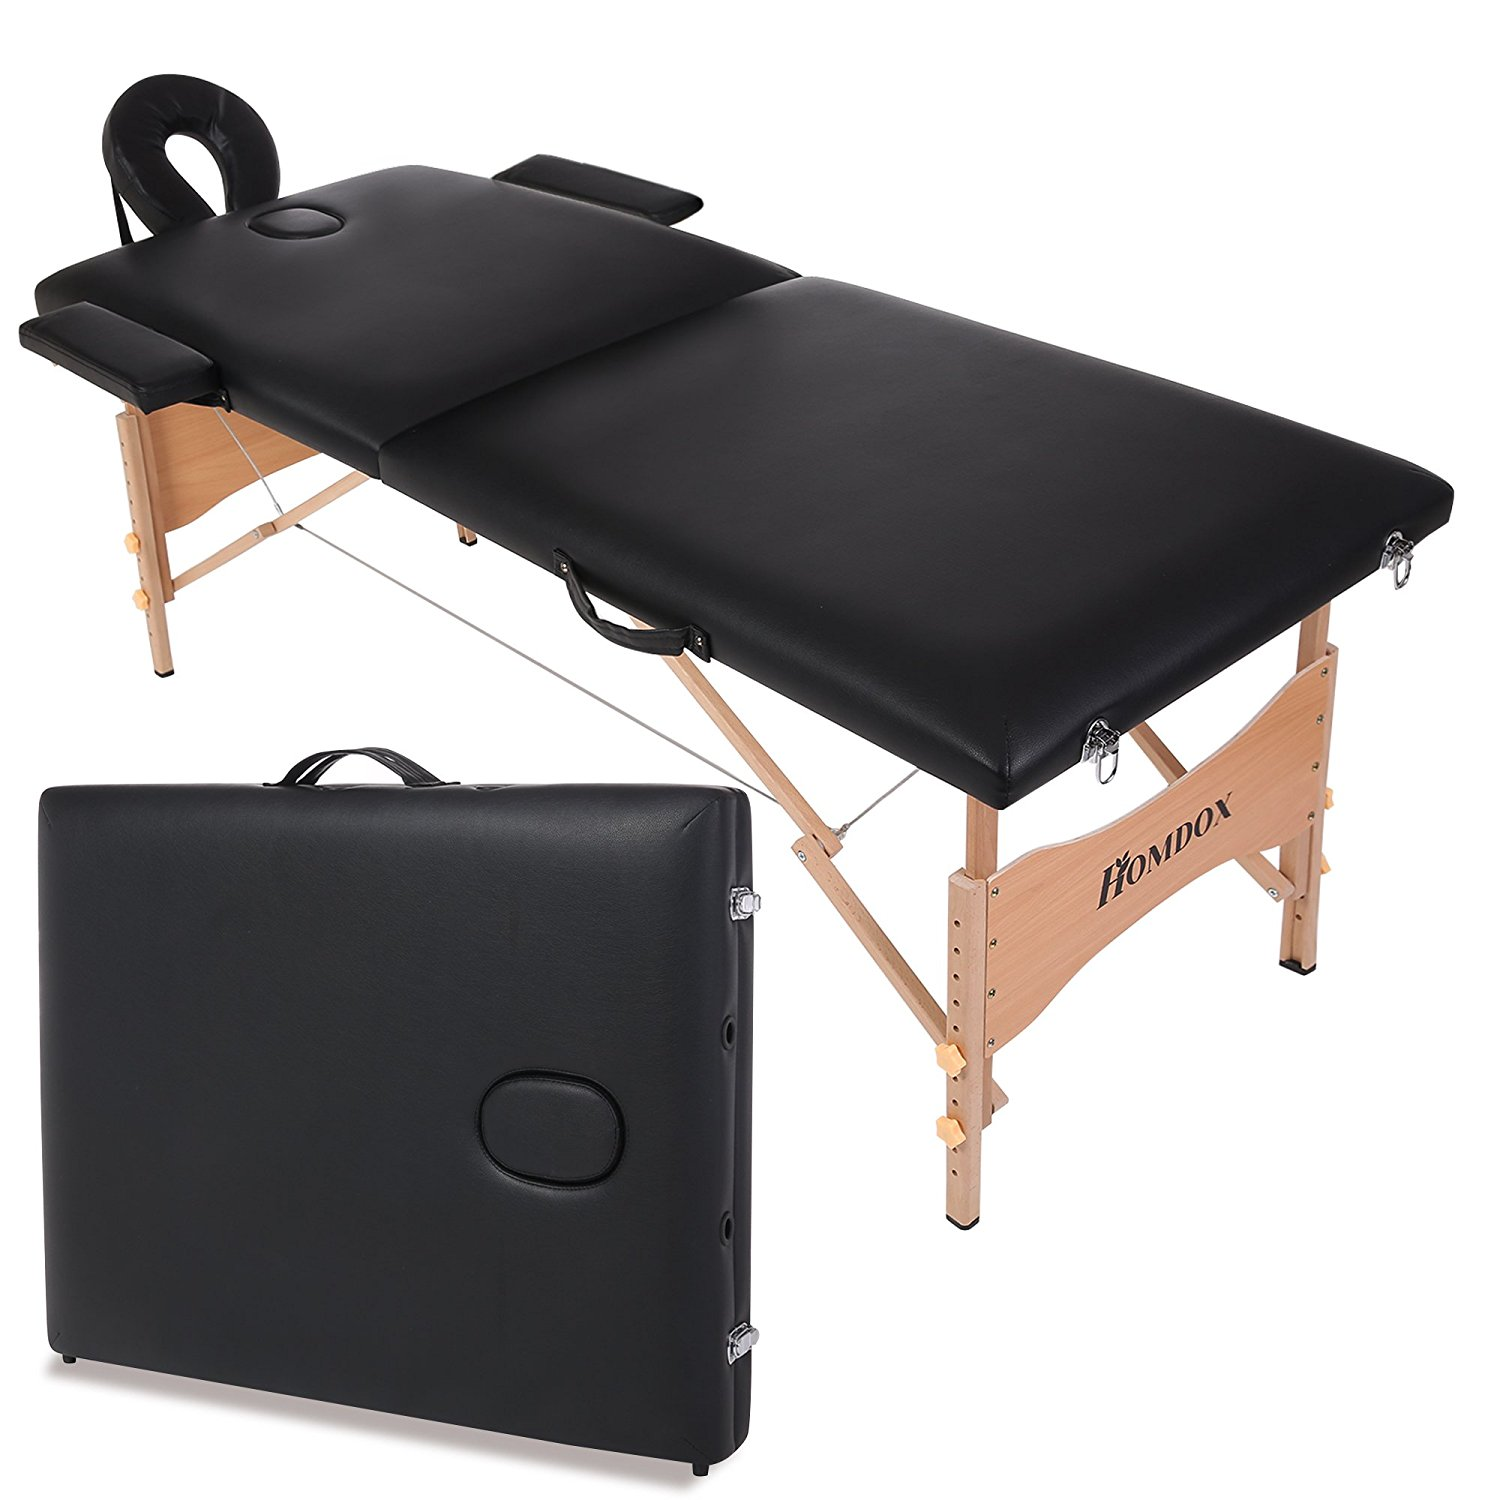 Homdox New Black Portable Massage Table Two-fold with Wooden Feet w/Free Carry Case (black)